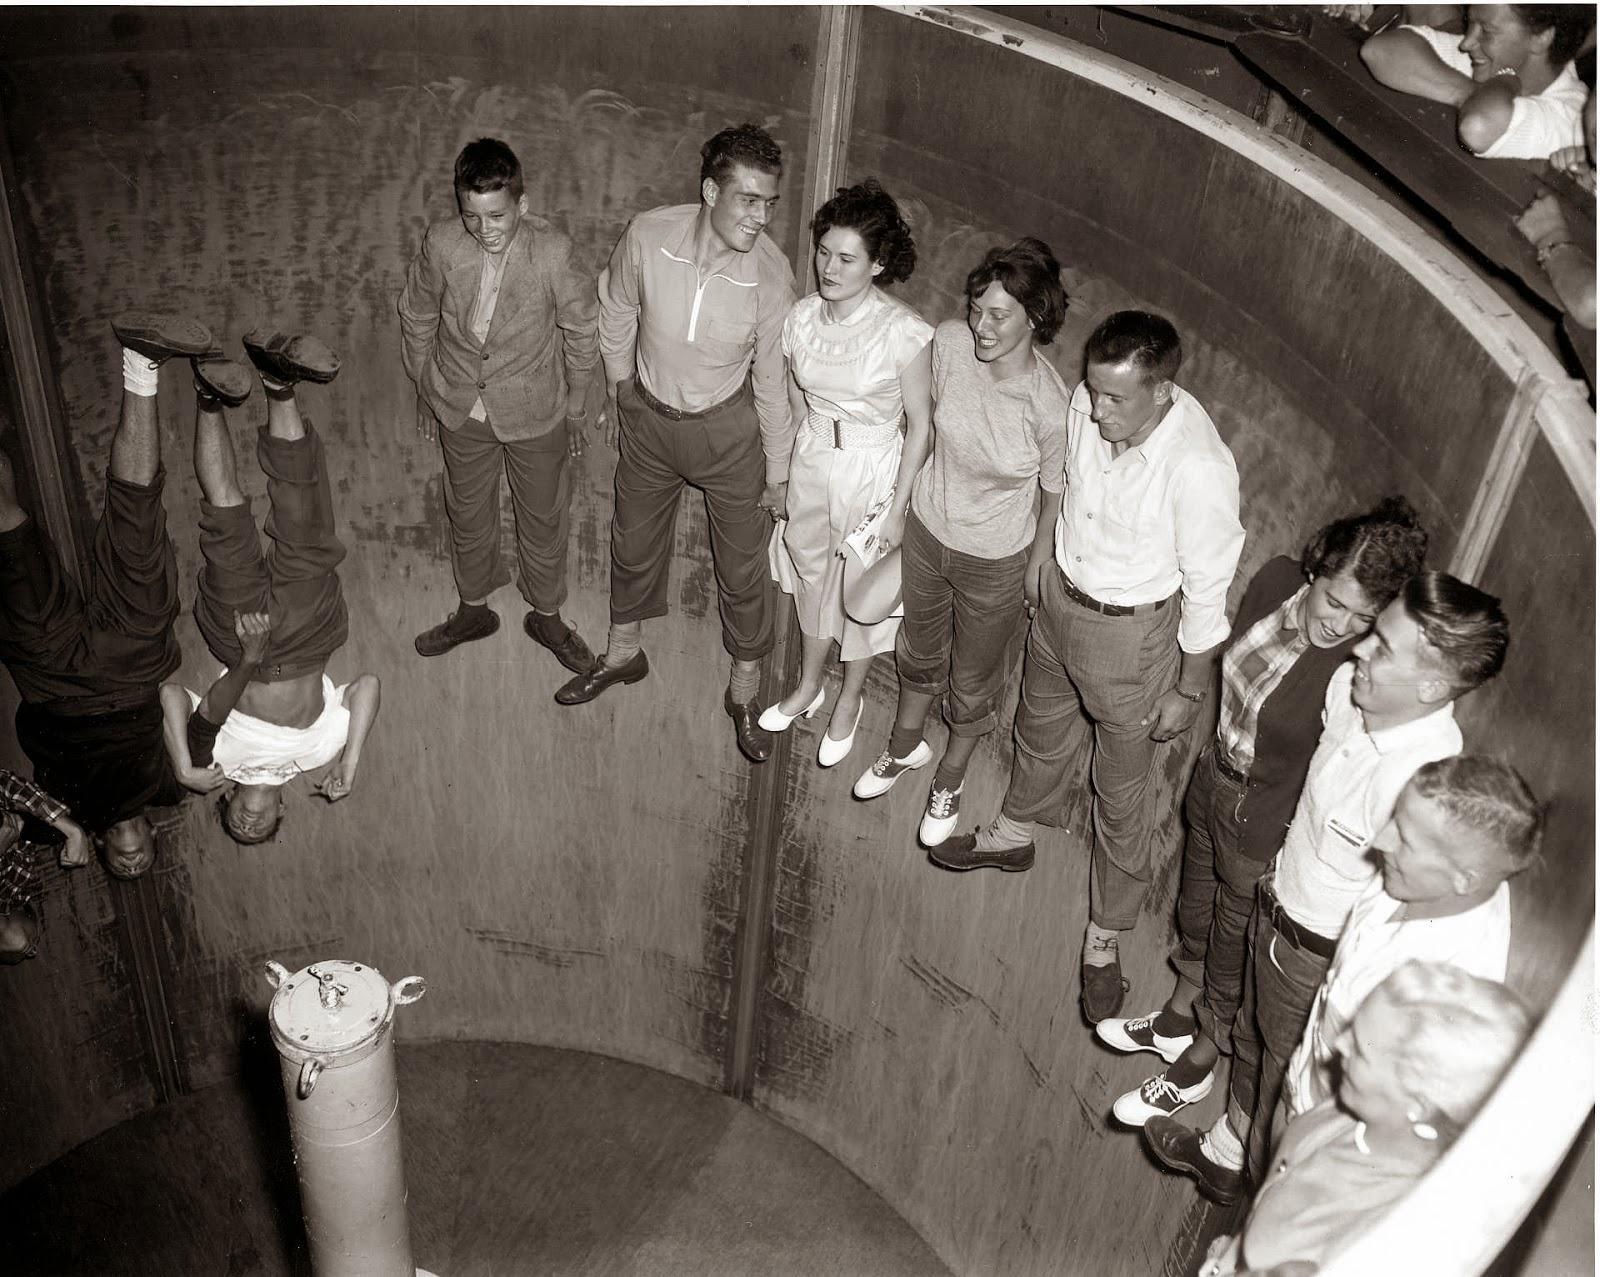 The Coney Island Rotor ride. Back when rides were fun and dangerous. http://t.co/IjOcGXFxBW